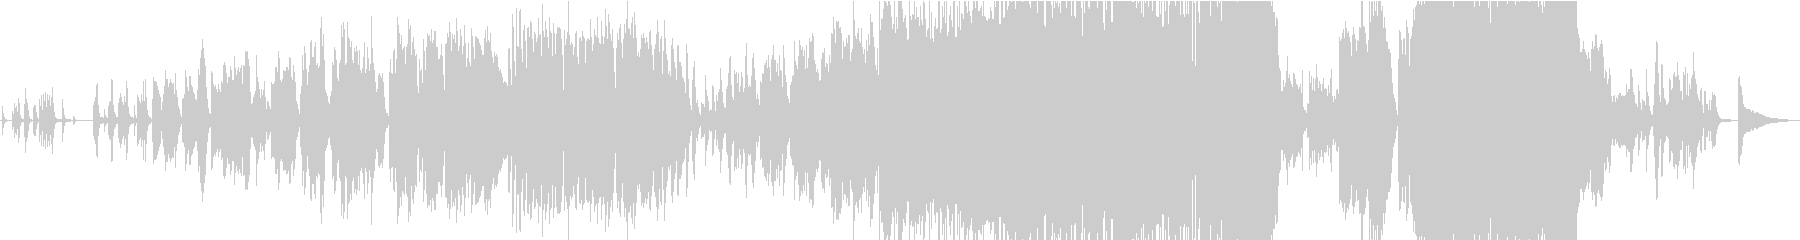 Impressive ballad of live trumpet's unreproduced waveform